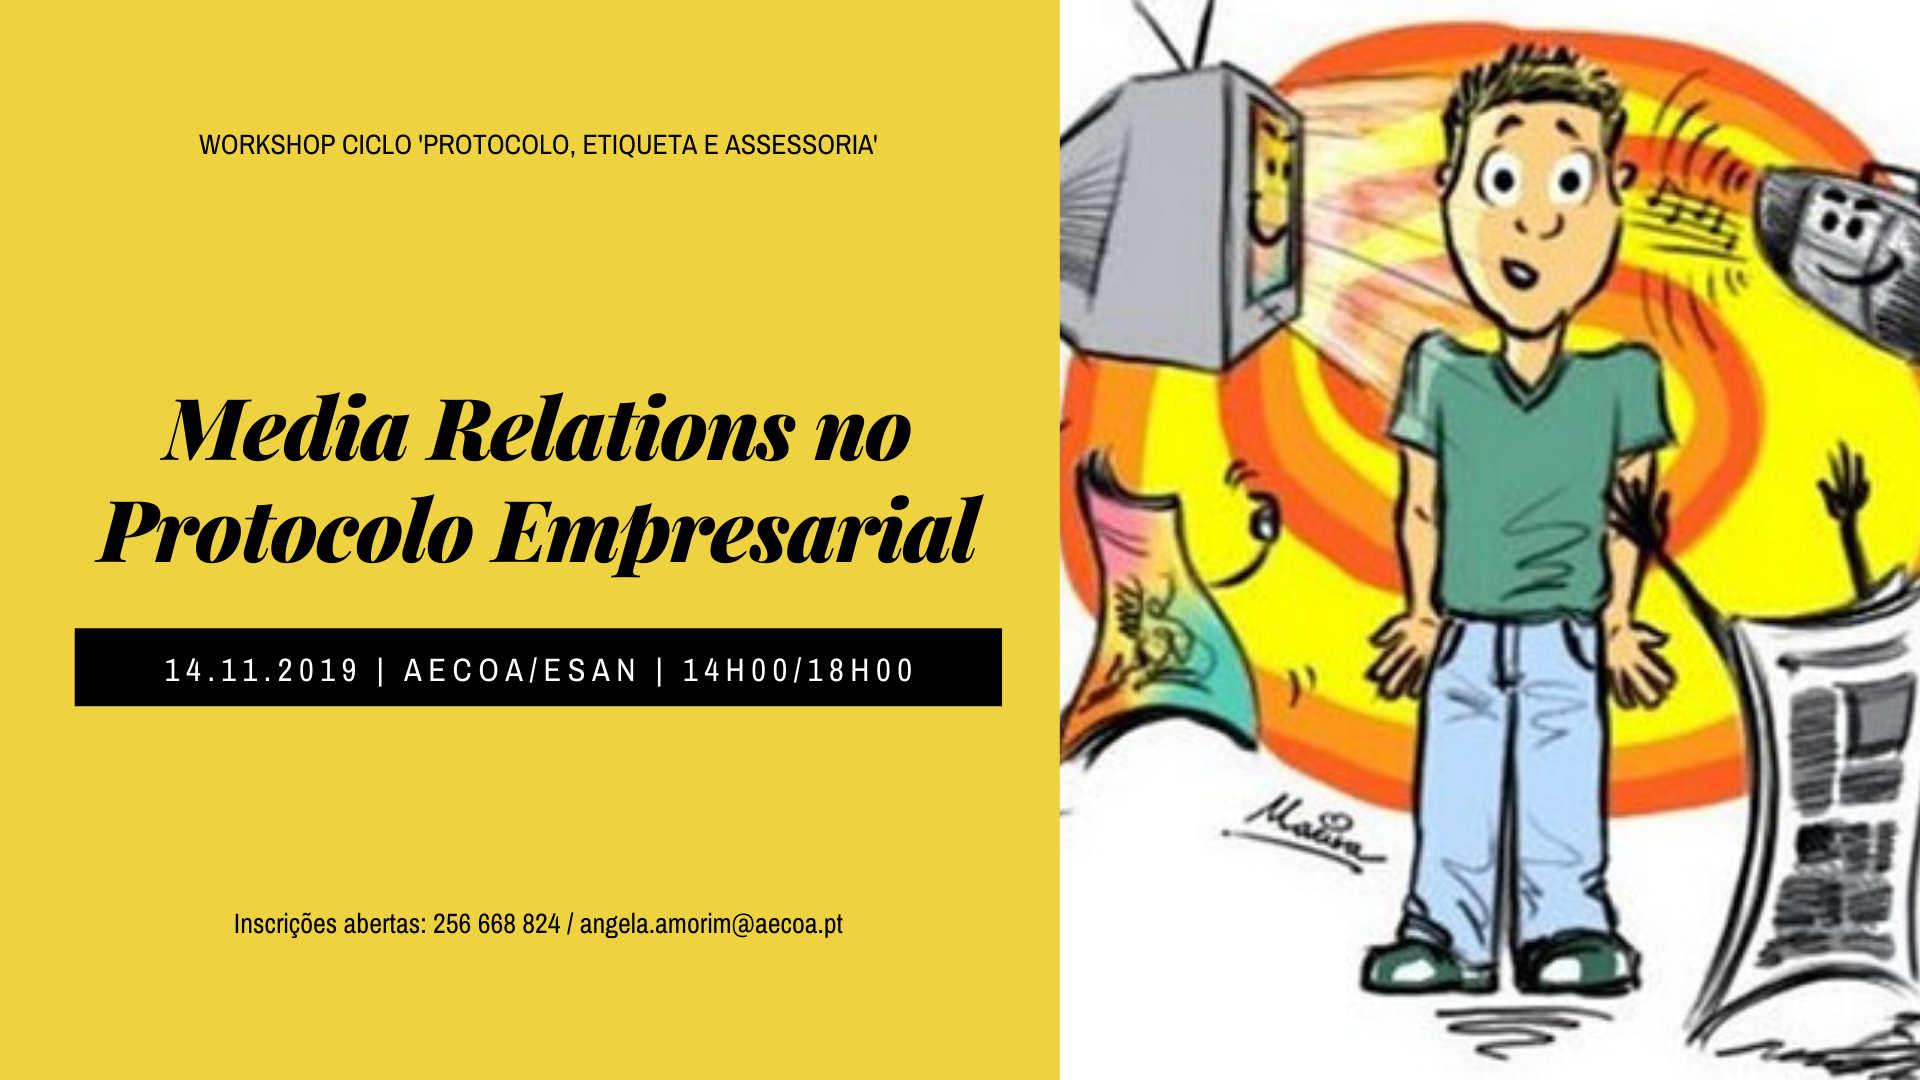 Media Relations no Protocolo Empresarial